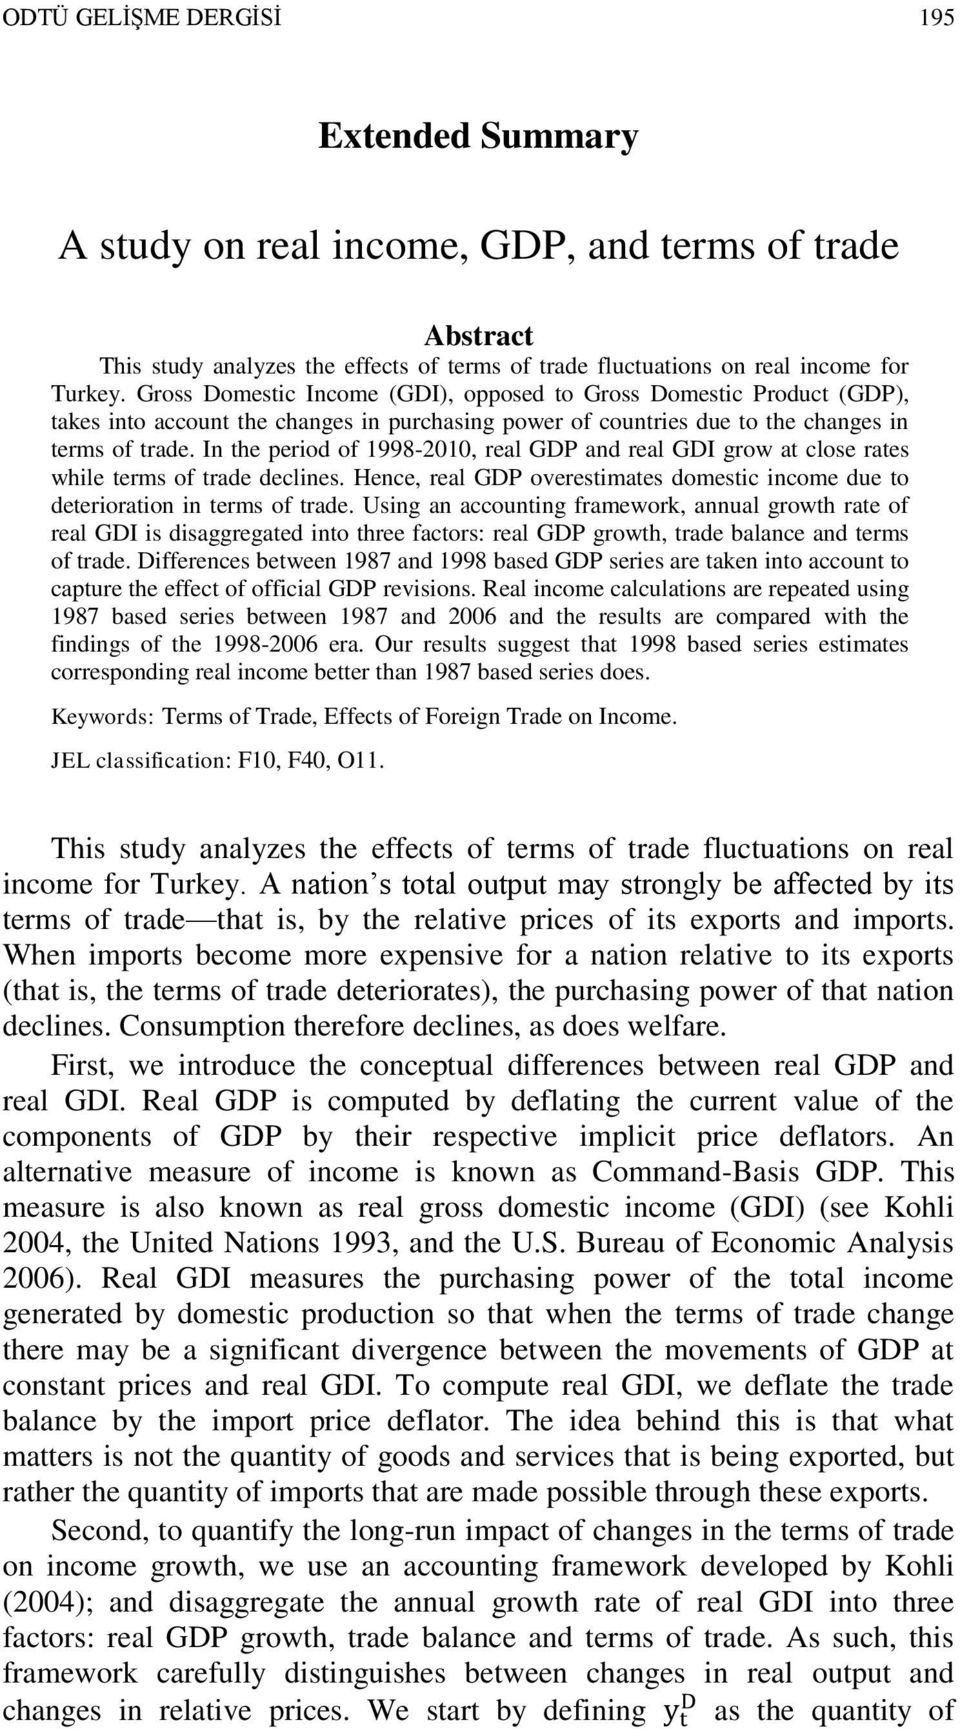 In the period of 1998-2010, real GDP and real GDI grow at close rates while terms of trade declines. Hence, real GDP overestimates domestic income due to deterioration in terms of trade.